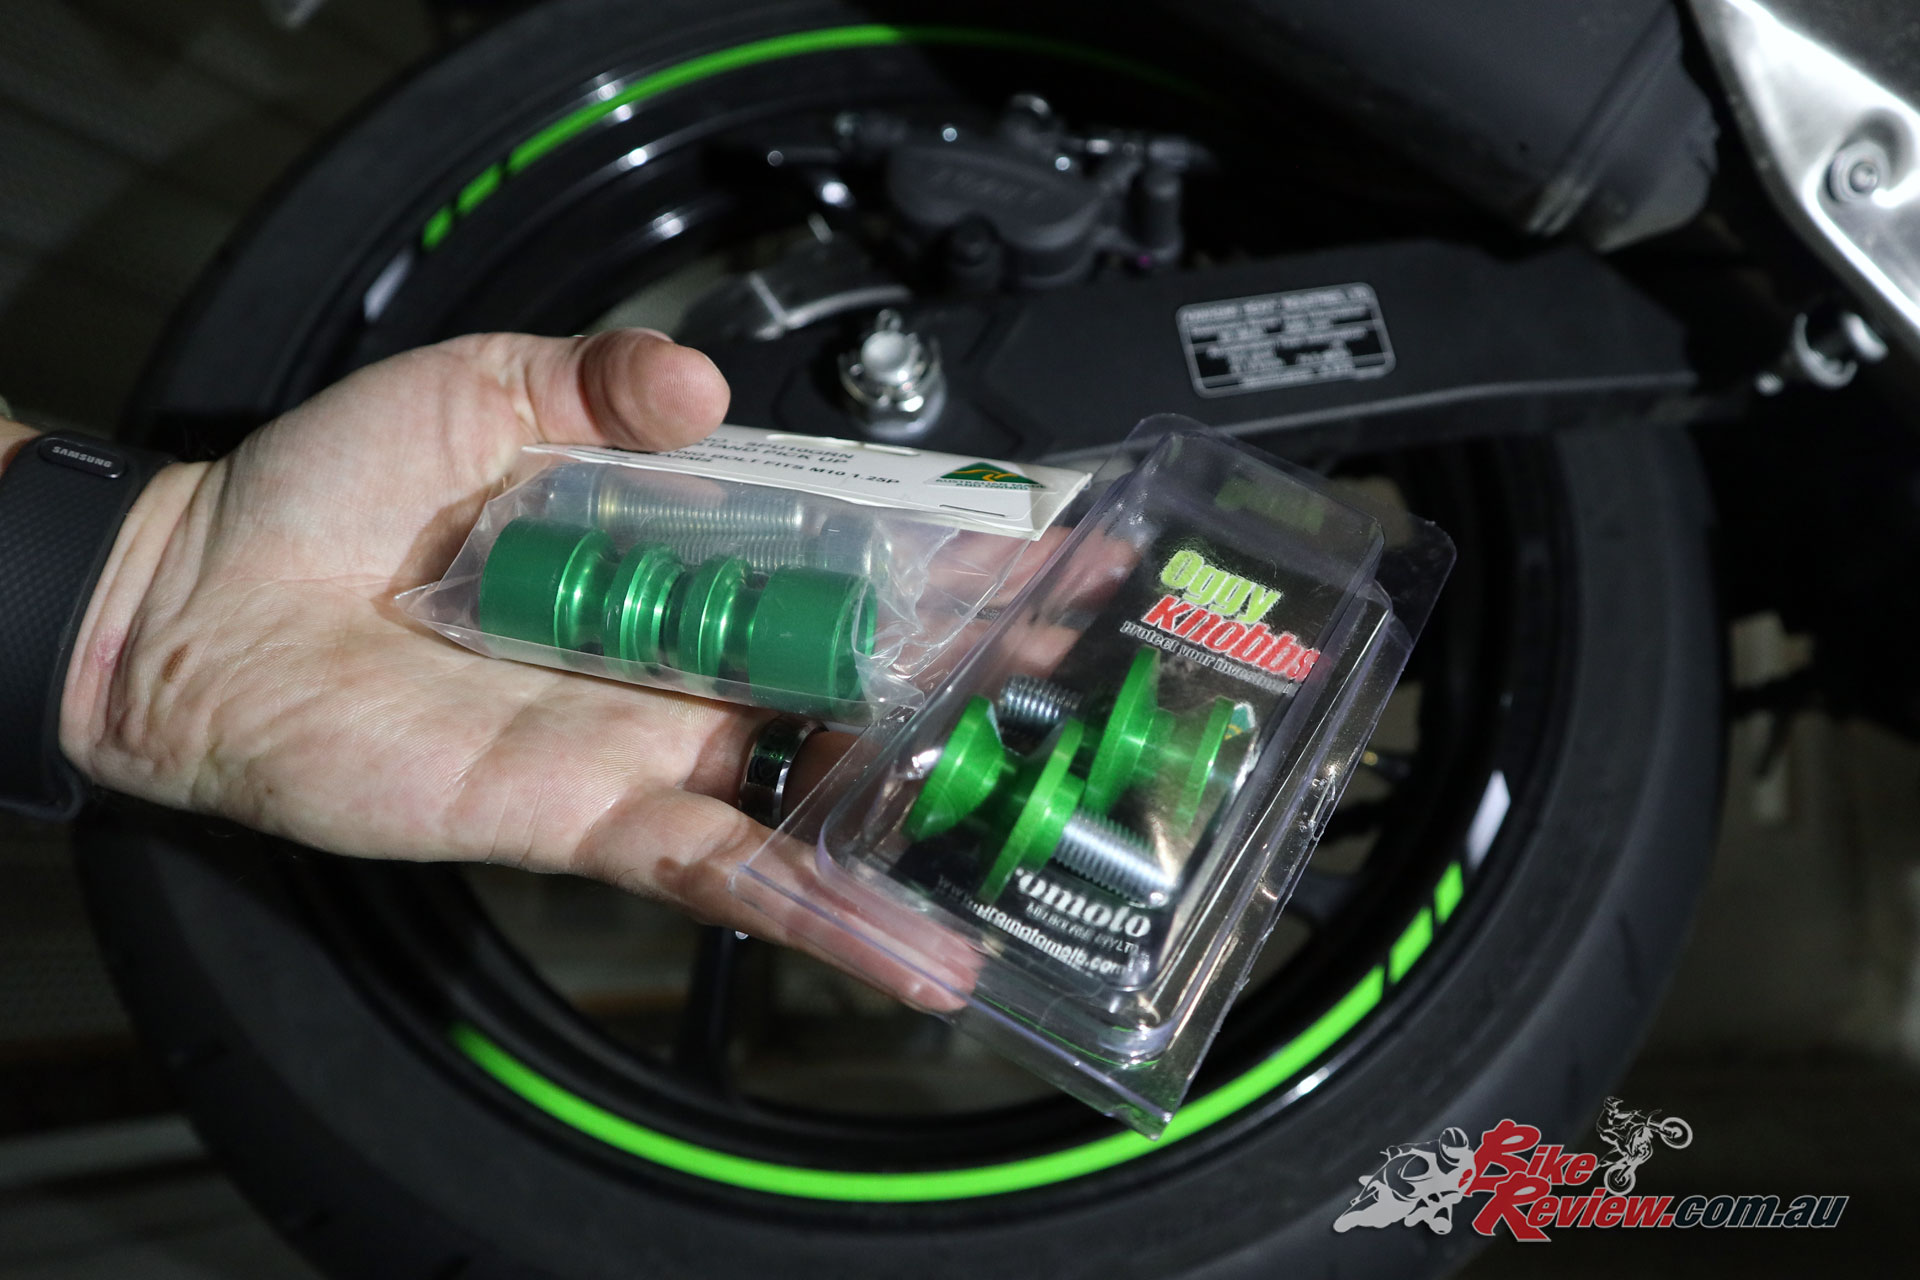 Our first attempt at pick-up spools was a no-go, with both the sets we thought might fit using M10 bolts, as suited the previous Ninja 300. The Ninja 400 needs M8 bolts.